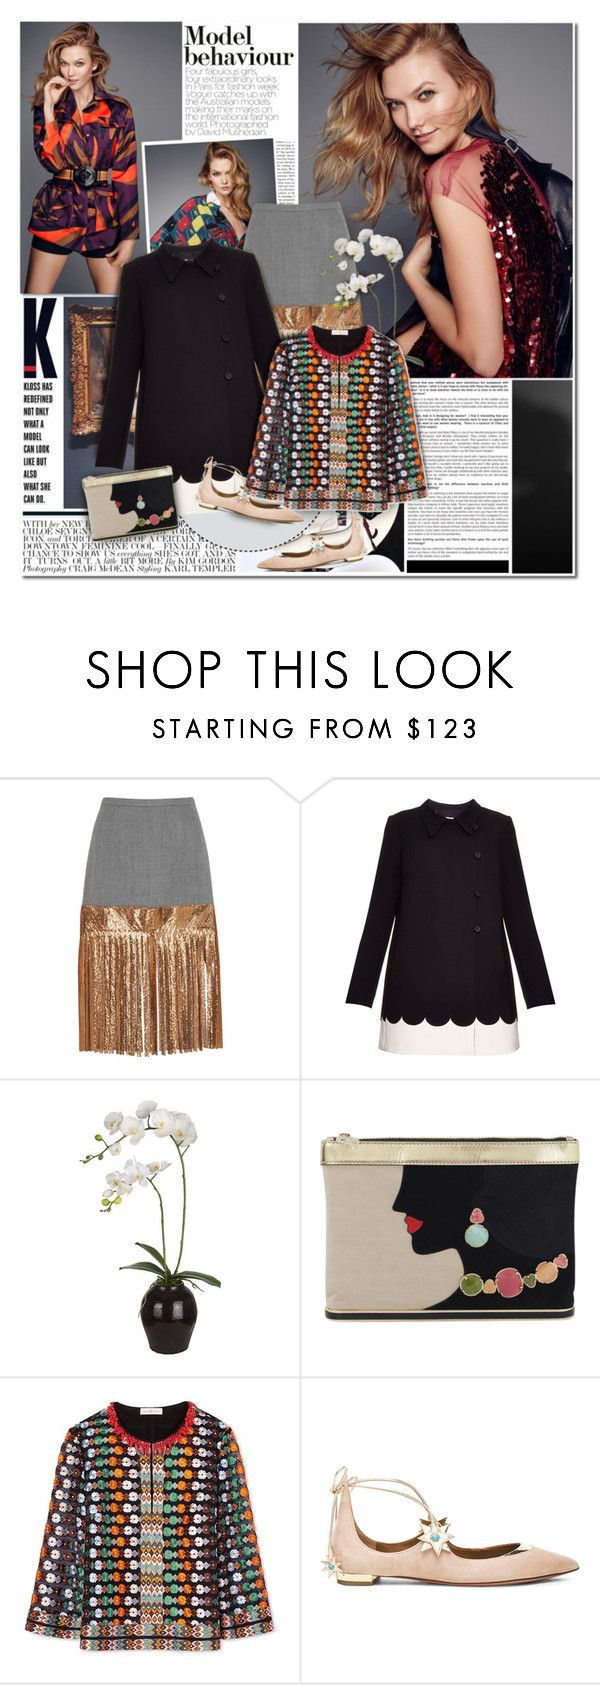 """""""Karlie Kloss: Model Behaviour"""" by beautifully-eclectic ❤ liked on Polyvore featuring Chloé, J.Crew, RED Valentino, Sia, Charlotte Olympia, Tory Burch, Aquazzura, women's clothing, women and female"""